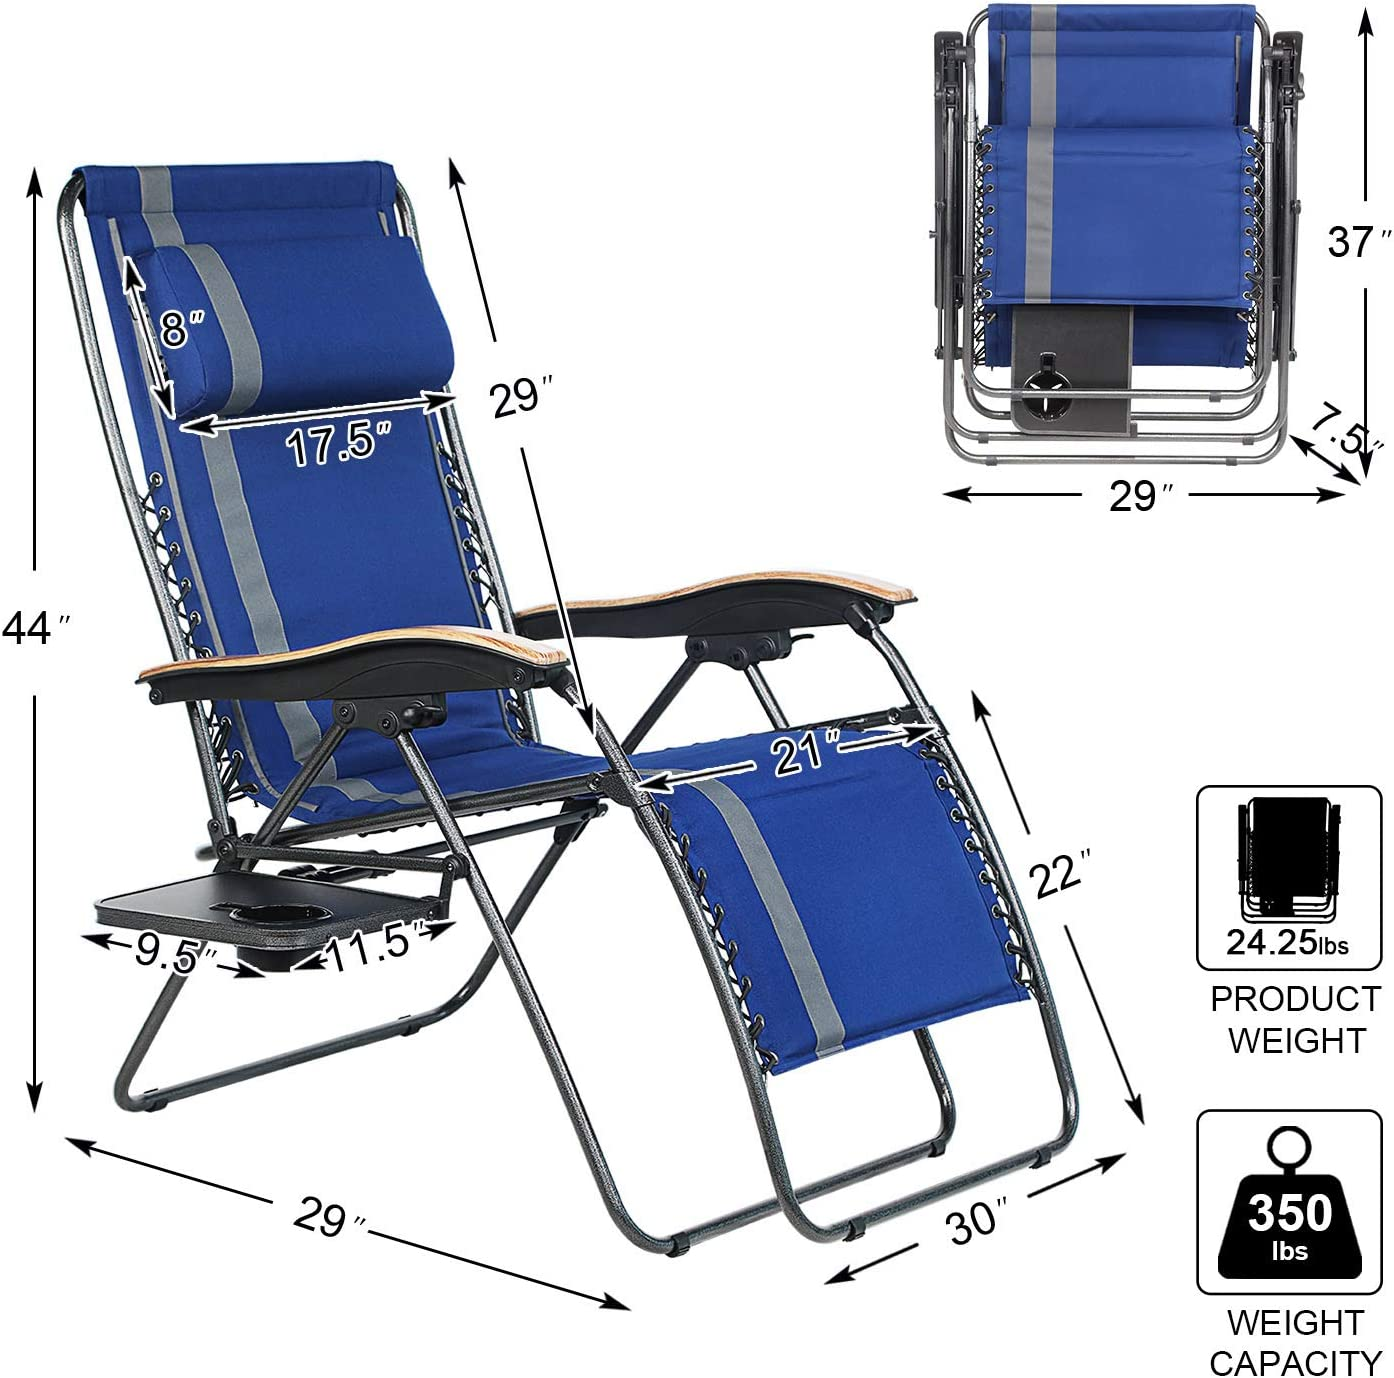 PORTAL Oversized Padded Zero Gravity Chair, XL Seat Adjustable Patio Lounge Recliner Chair with Lumbar Support Pillow and Side Table Support 350lbs: Kitchen & Dining